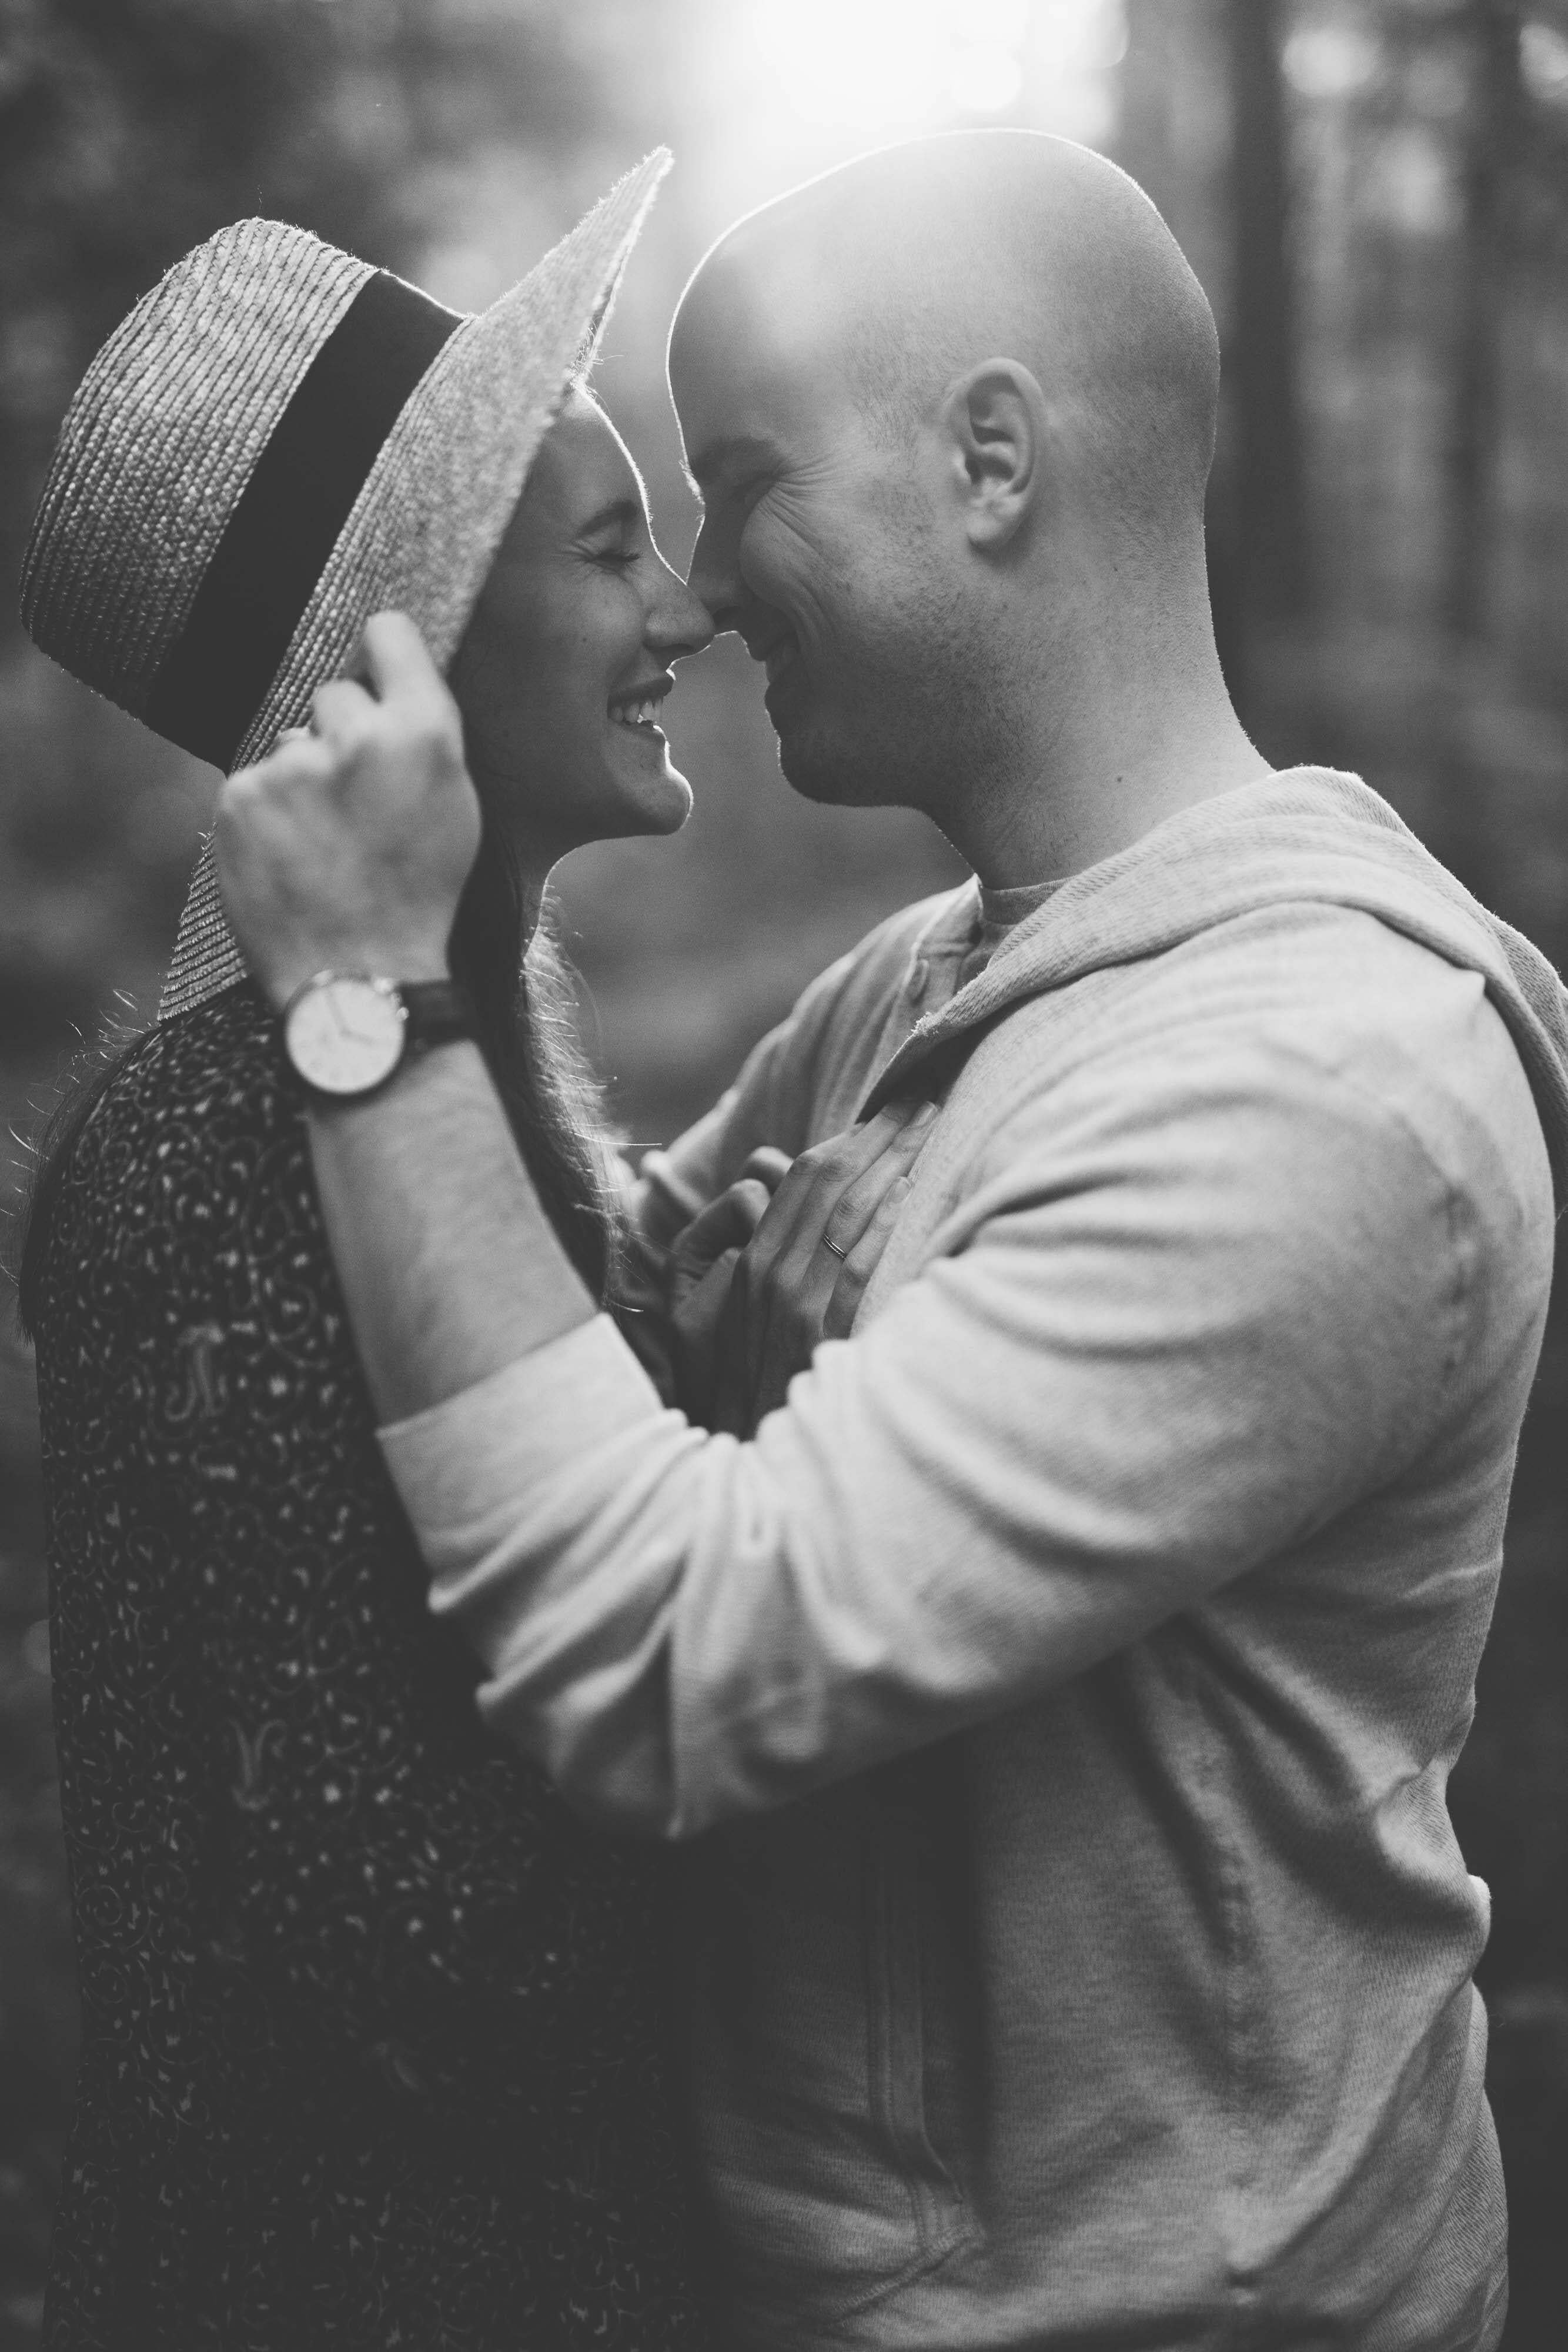 Black and white image of a couple smiling & facing each other with the guy reaching for the girl's hat.